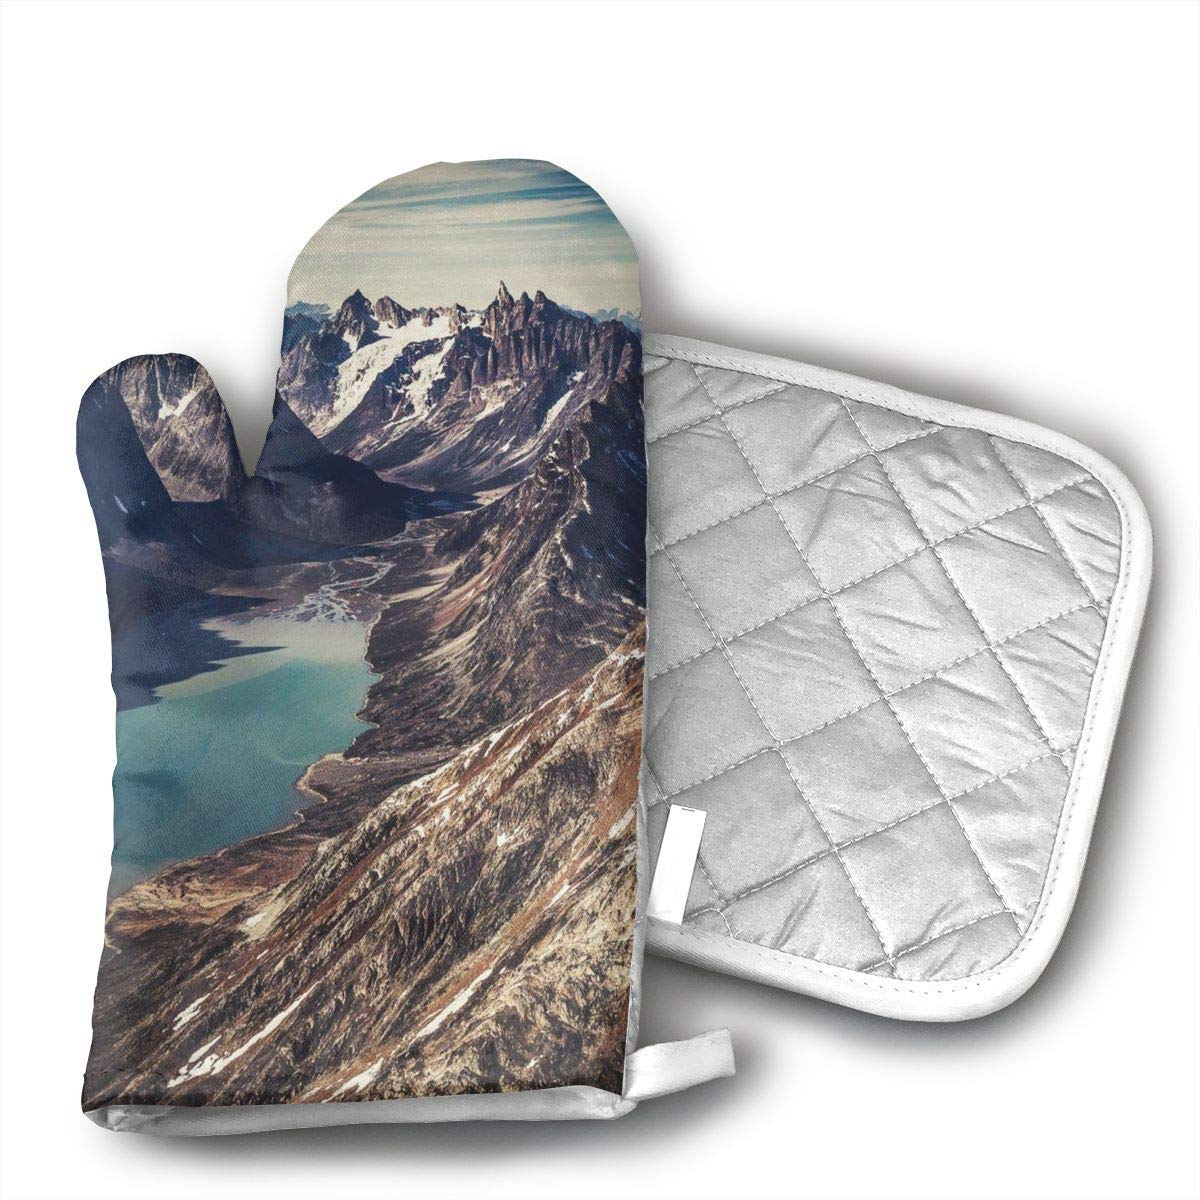 UYRHFS Grand Canyon Oven Mitts and Pot Holder Kitchen Set with, Heat Resistant, Oven Gloves and Pot Holders 2pcs Set for BBQ Cooking Baking